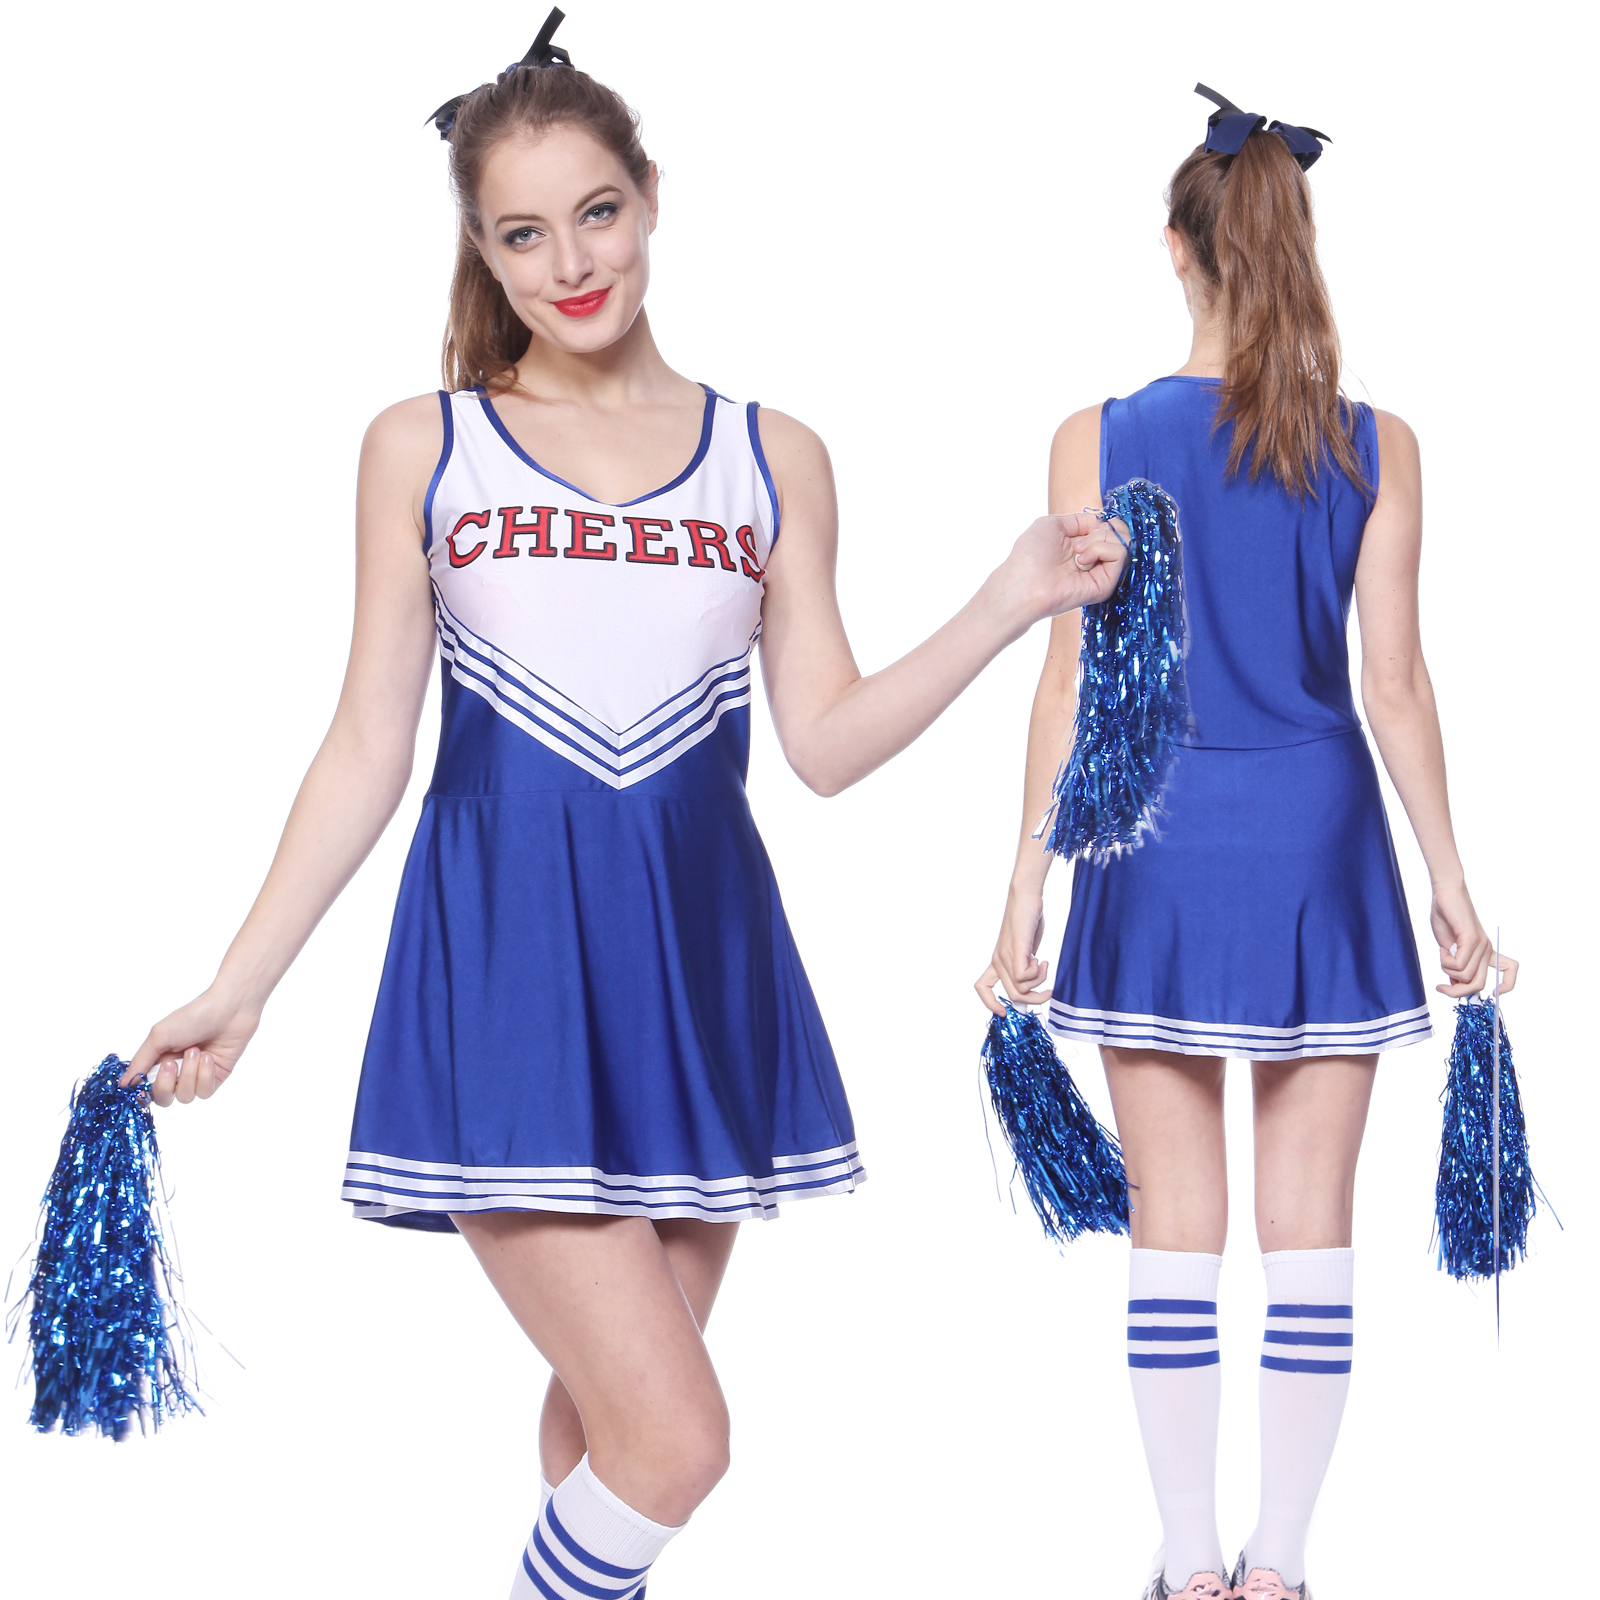 Women Cheerleader Uniform School Girl Fancy Dress Costume Outfit Pompom or Socks | eBay  sc 1 st  eBay & Women Cheerleader Uniform School Girl Fancy Dress Costume Outfit ...